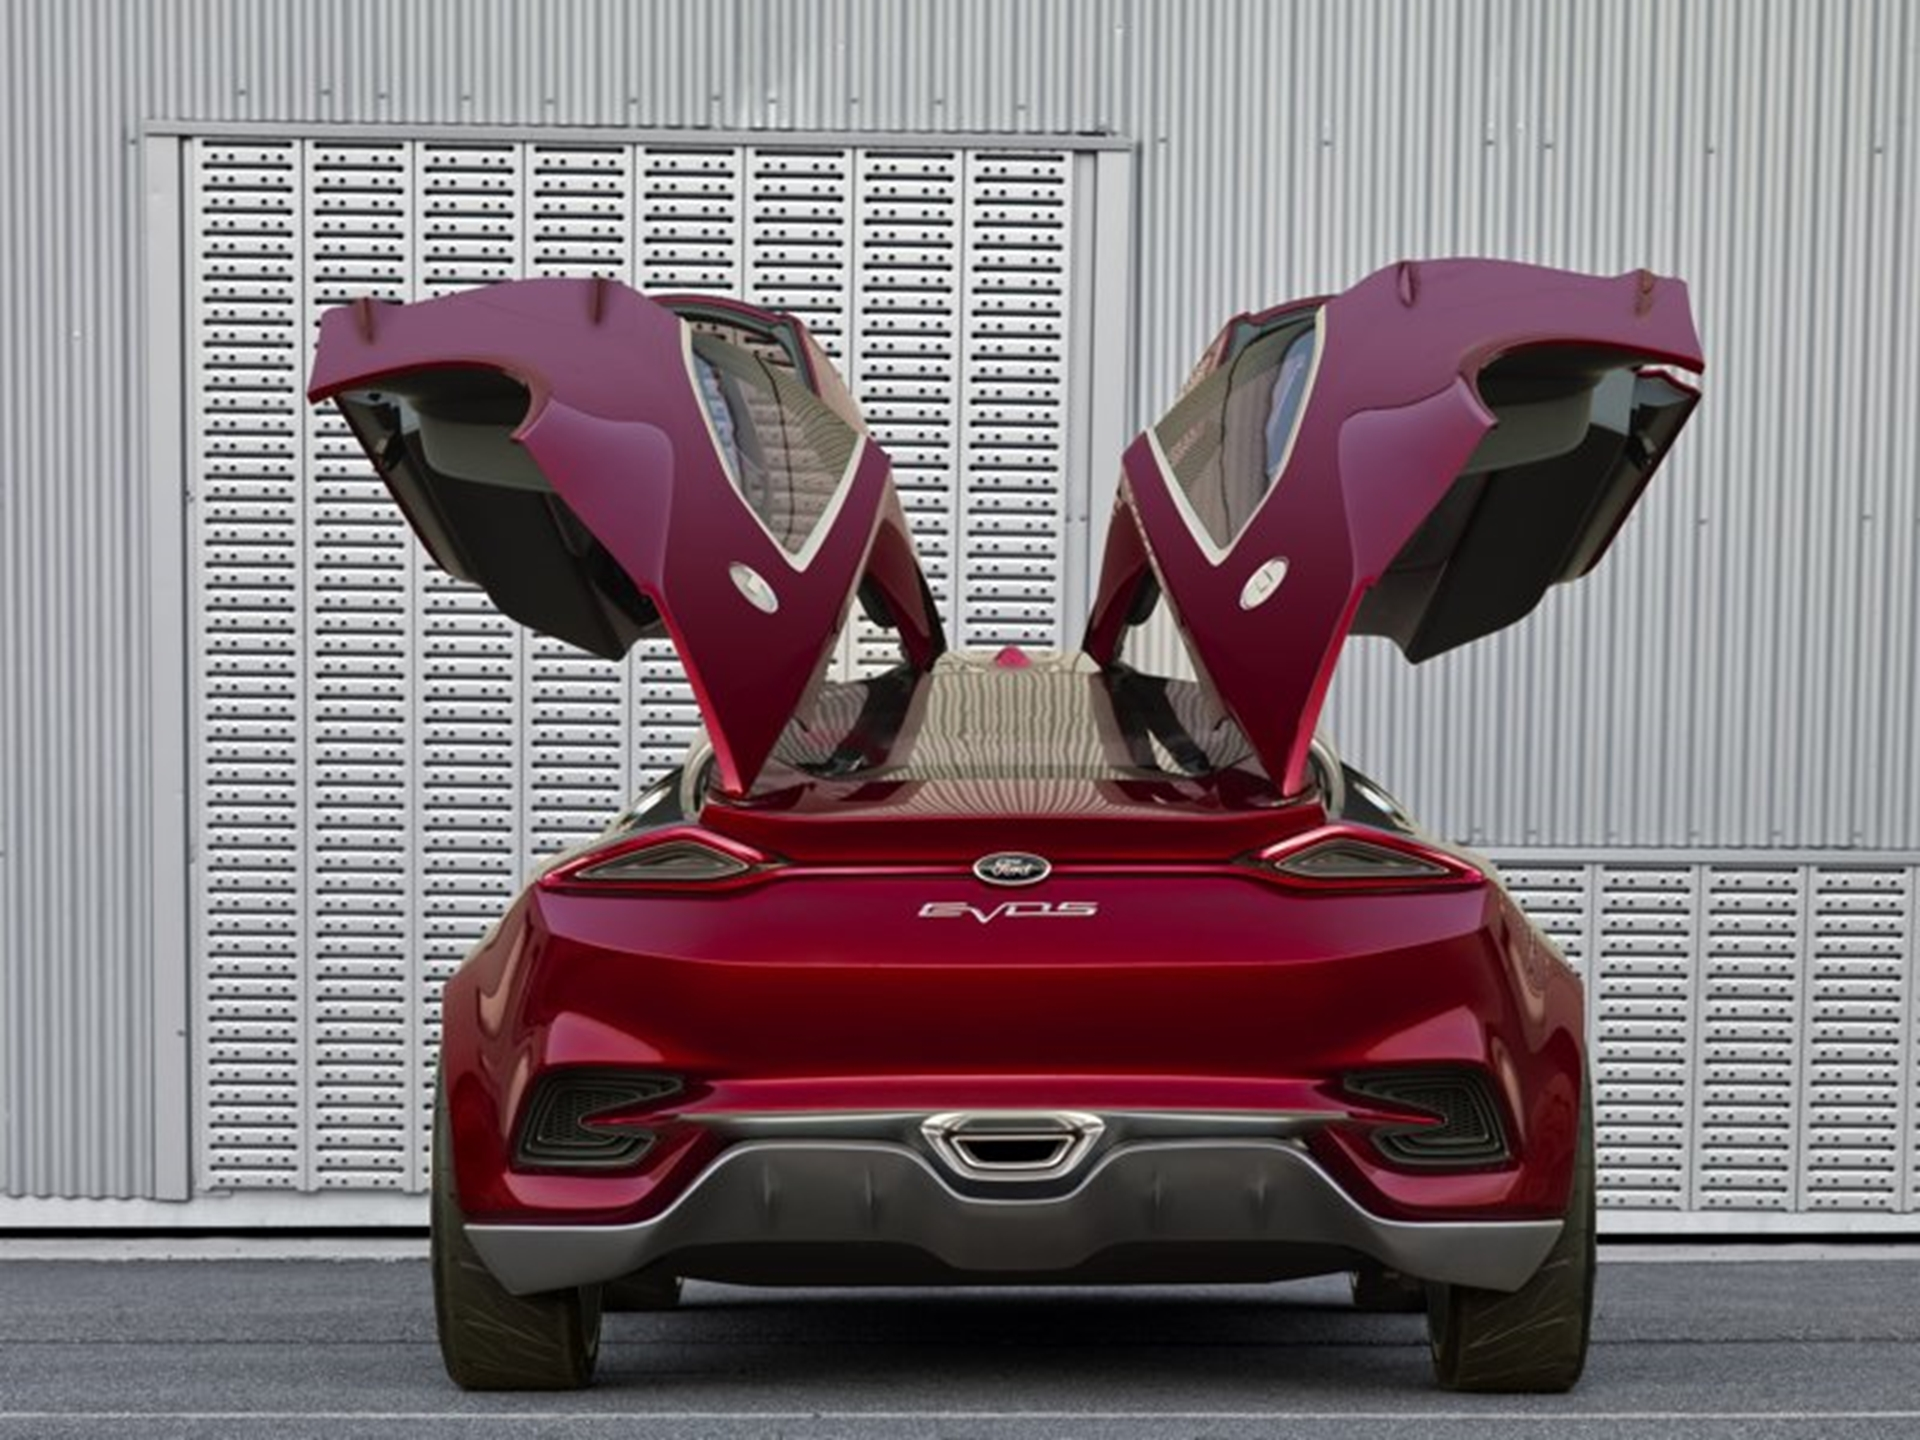 Ford Concept Cars Design 2011 Open Doors